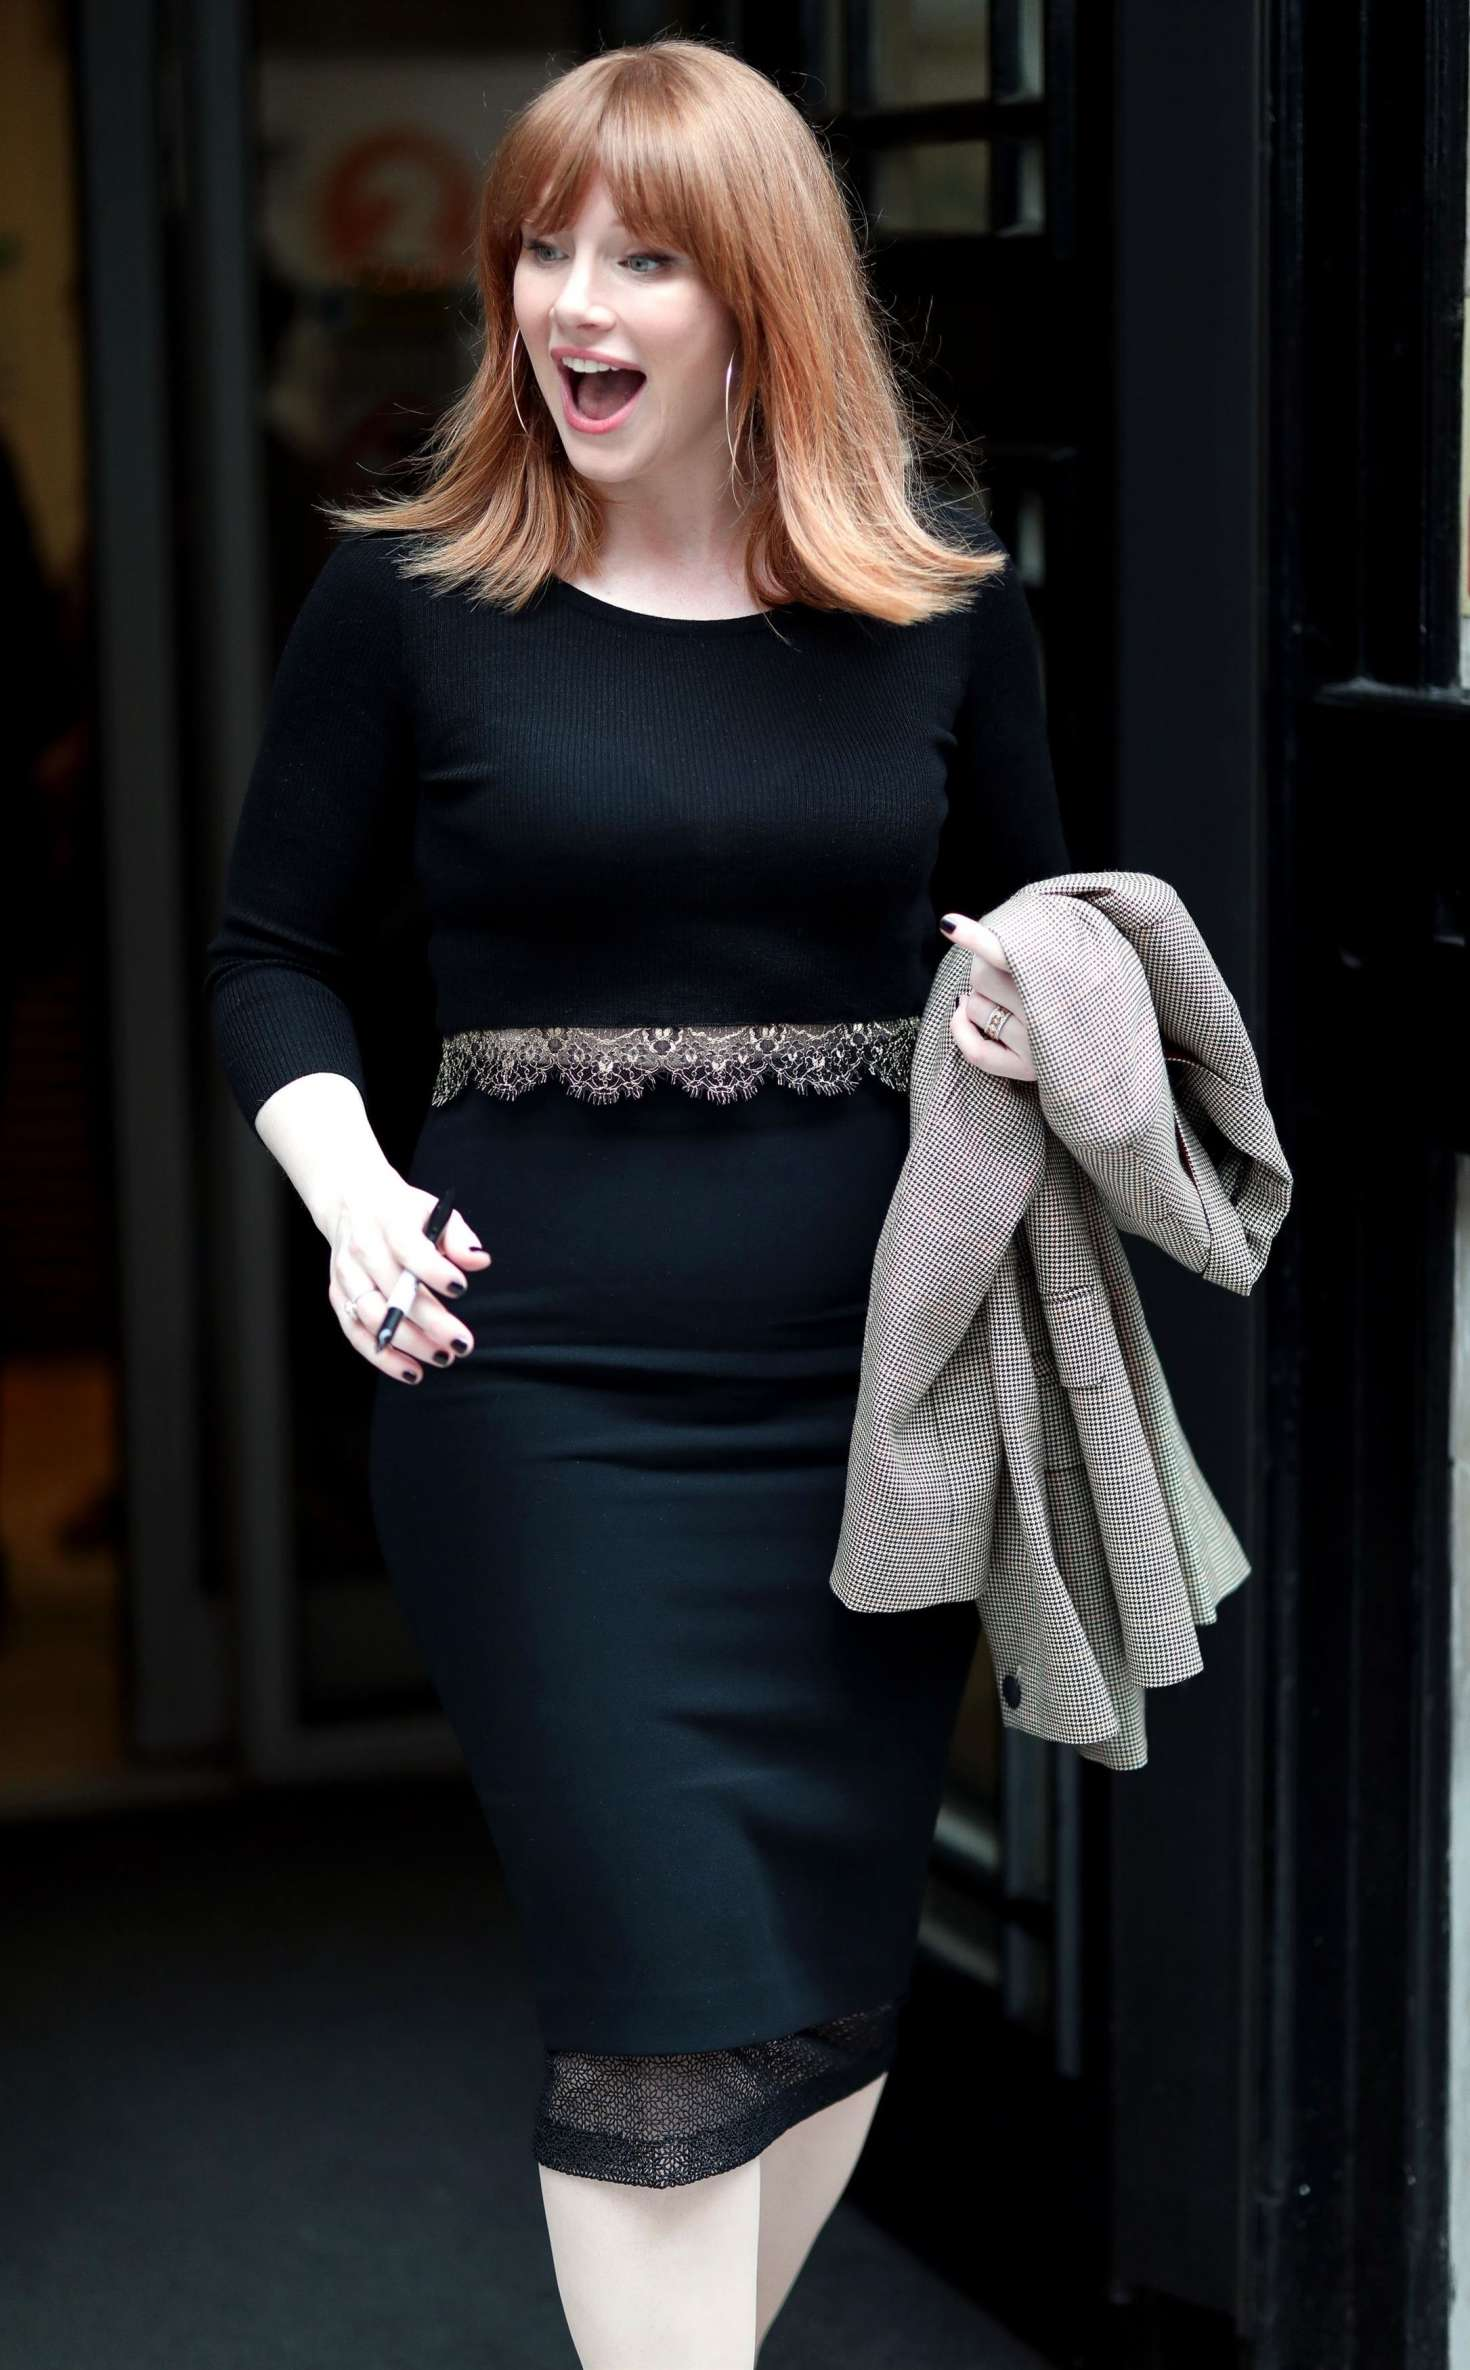 Bryce Dallas Howard on the Chris Evans Breakfast show in London